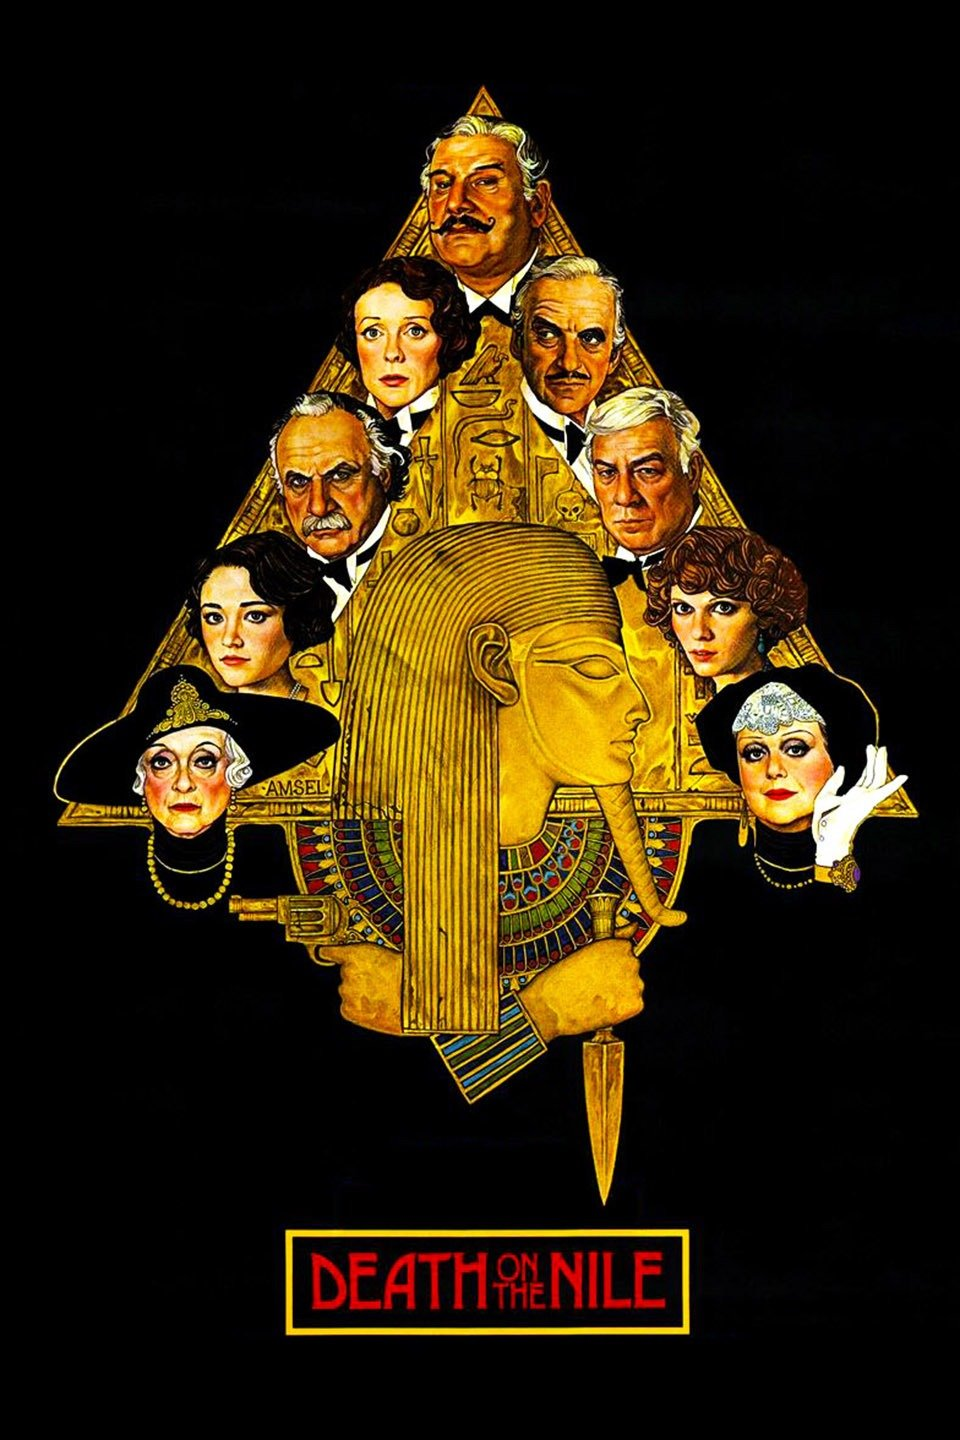 Death On The Nile Movie Review